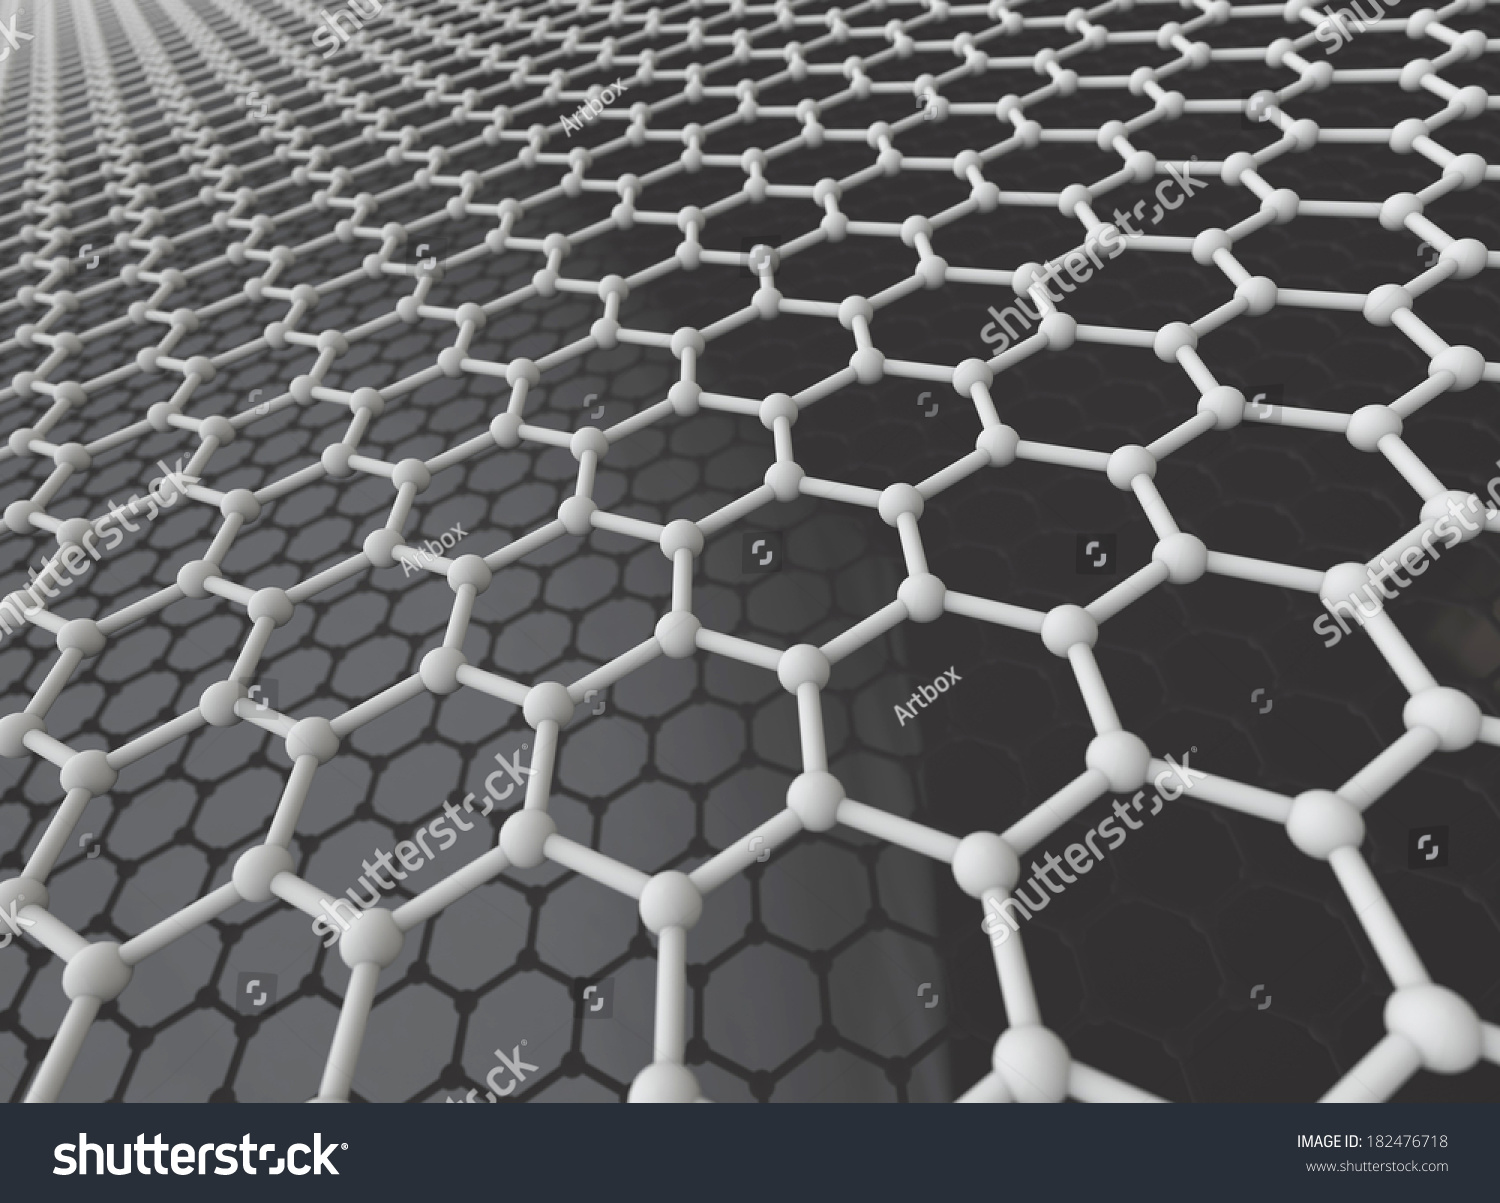 Graphene Crystal Lattice 3d Model Stock Photo 182476718 ...